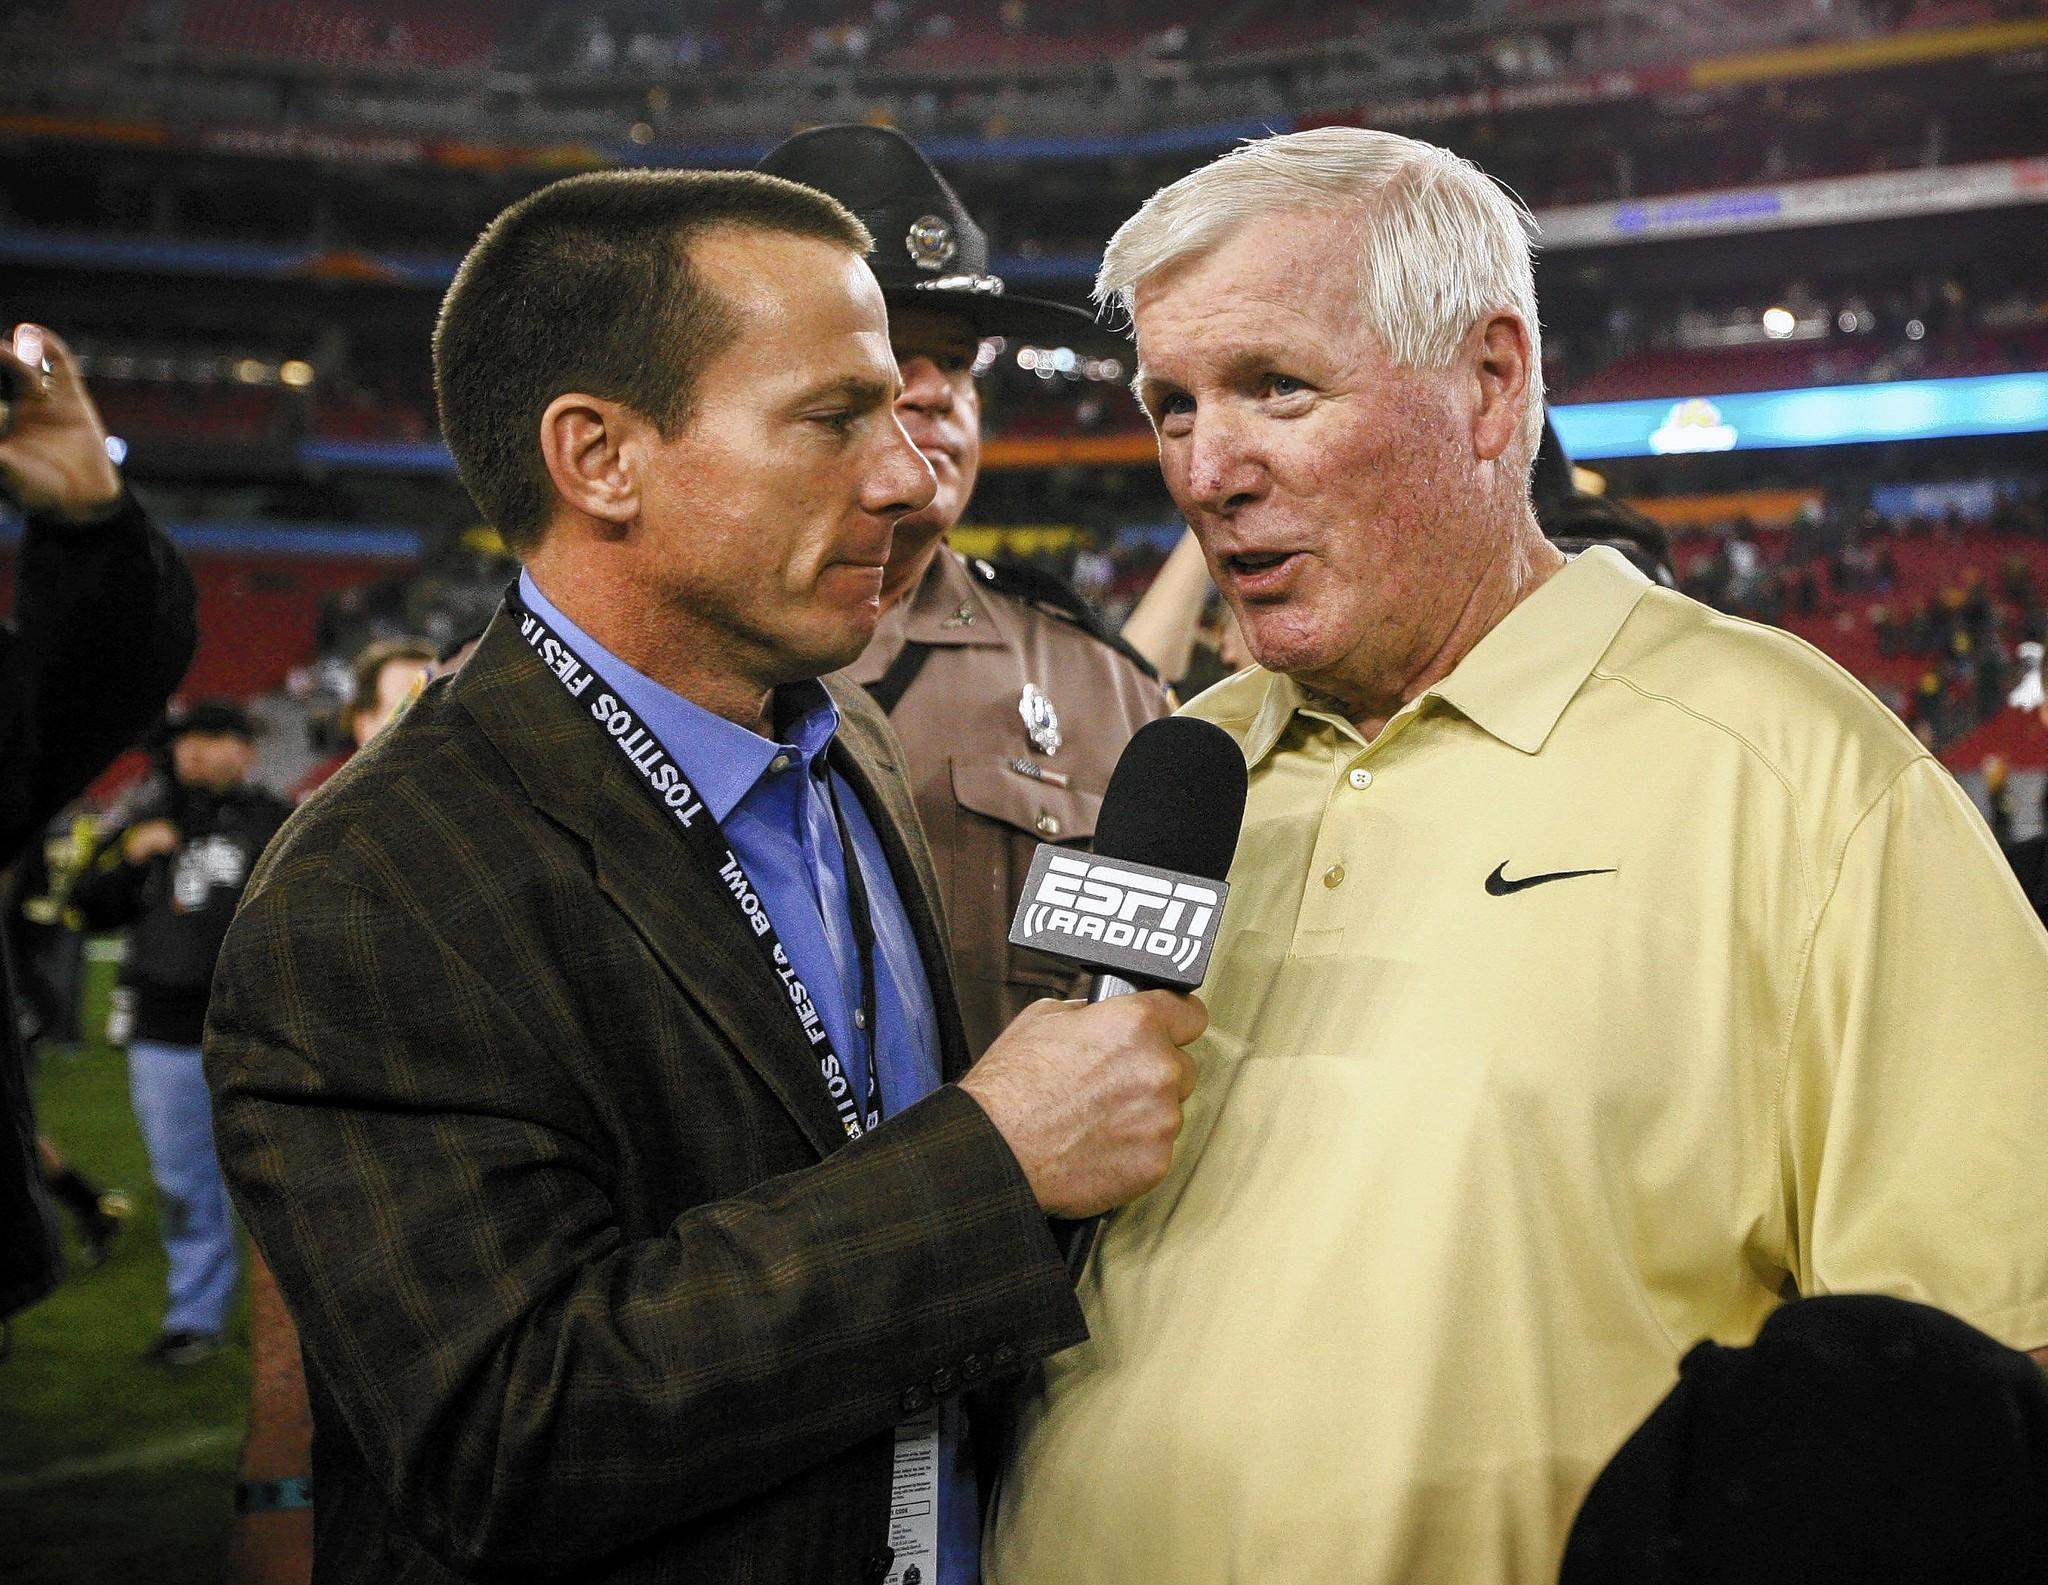 UCF coach George O'Leary is interviewed after the Knights' 52-42 victory over Baylor in the Tostitos Fiesta Bowl at the University of Phoenix stadium in Glendale, Ariz.